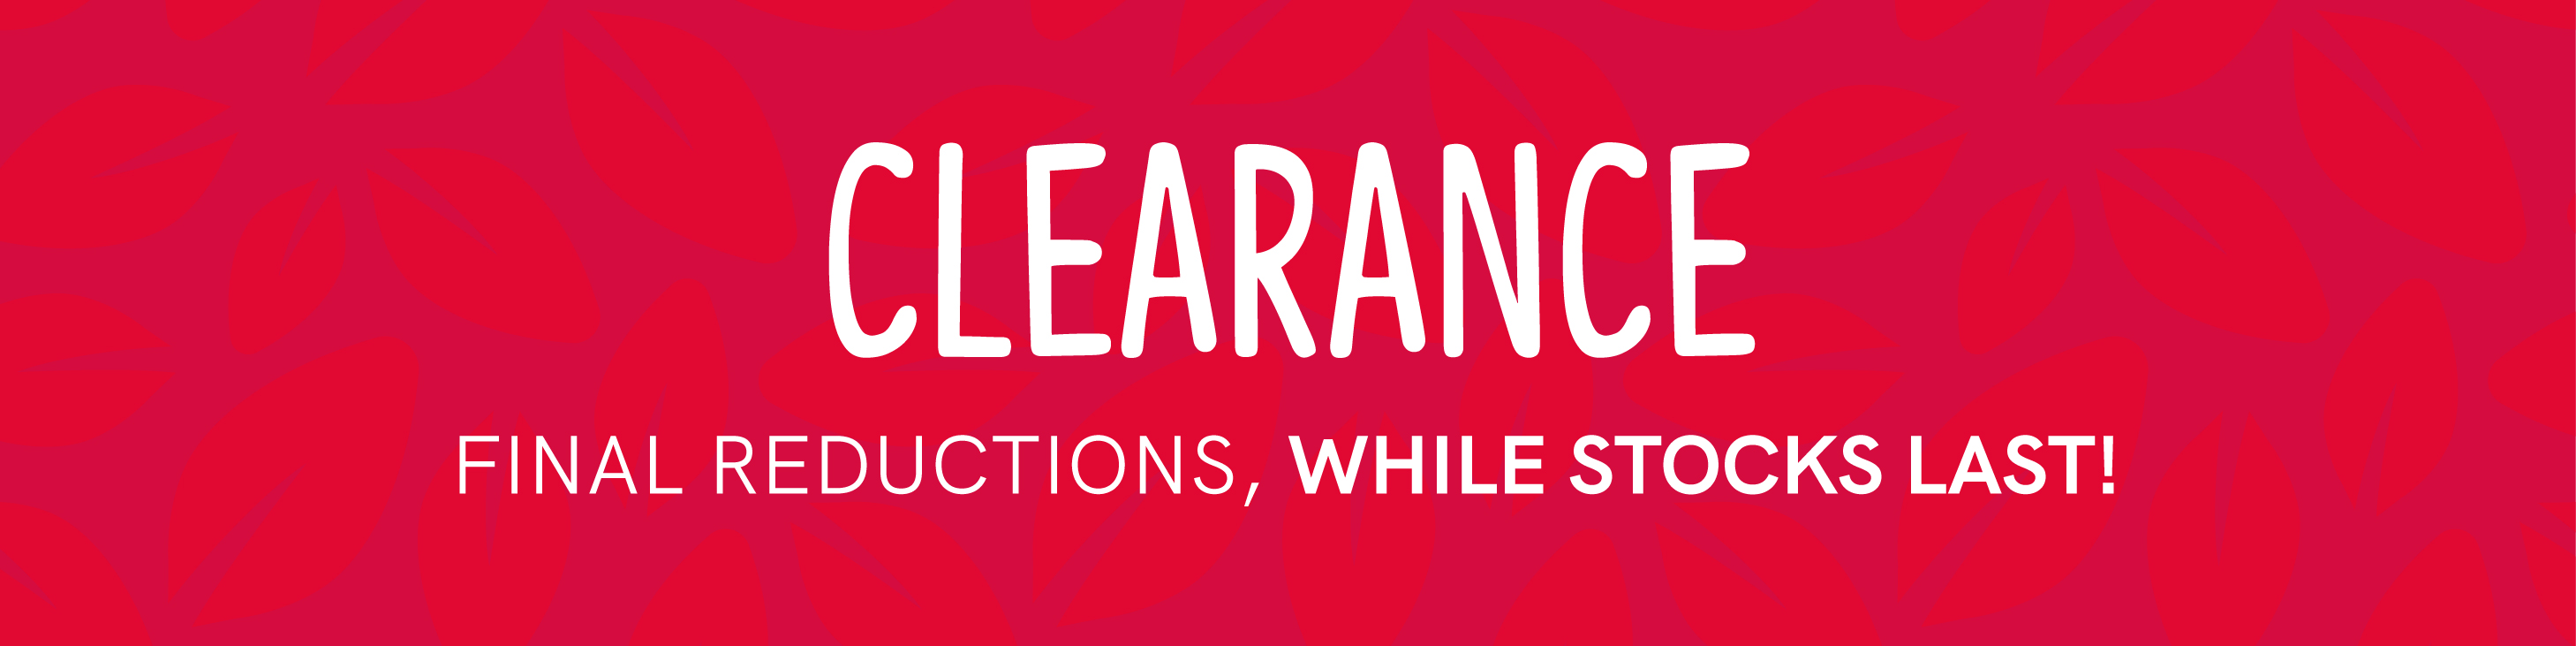 HealthMonthly Clearance